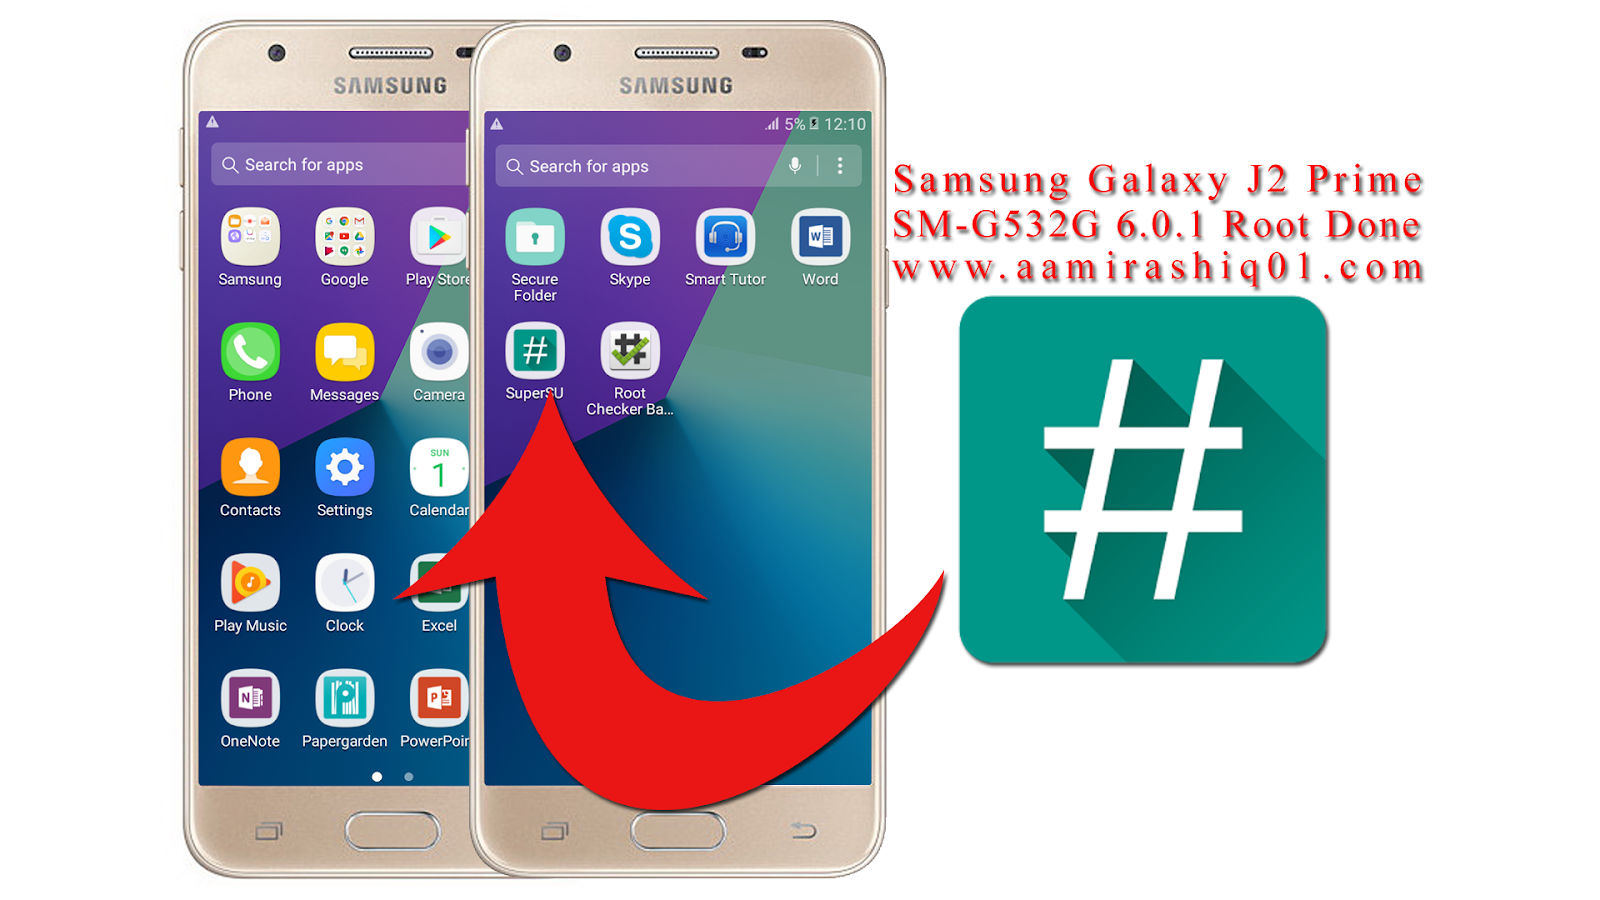 Samsung Galaxy J2 Prime SM-G532G Root File Download